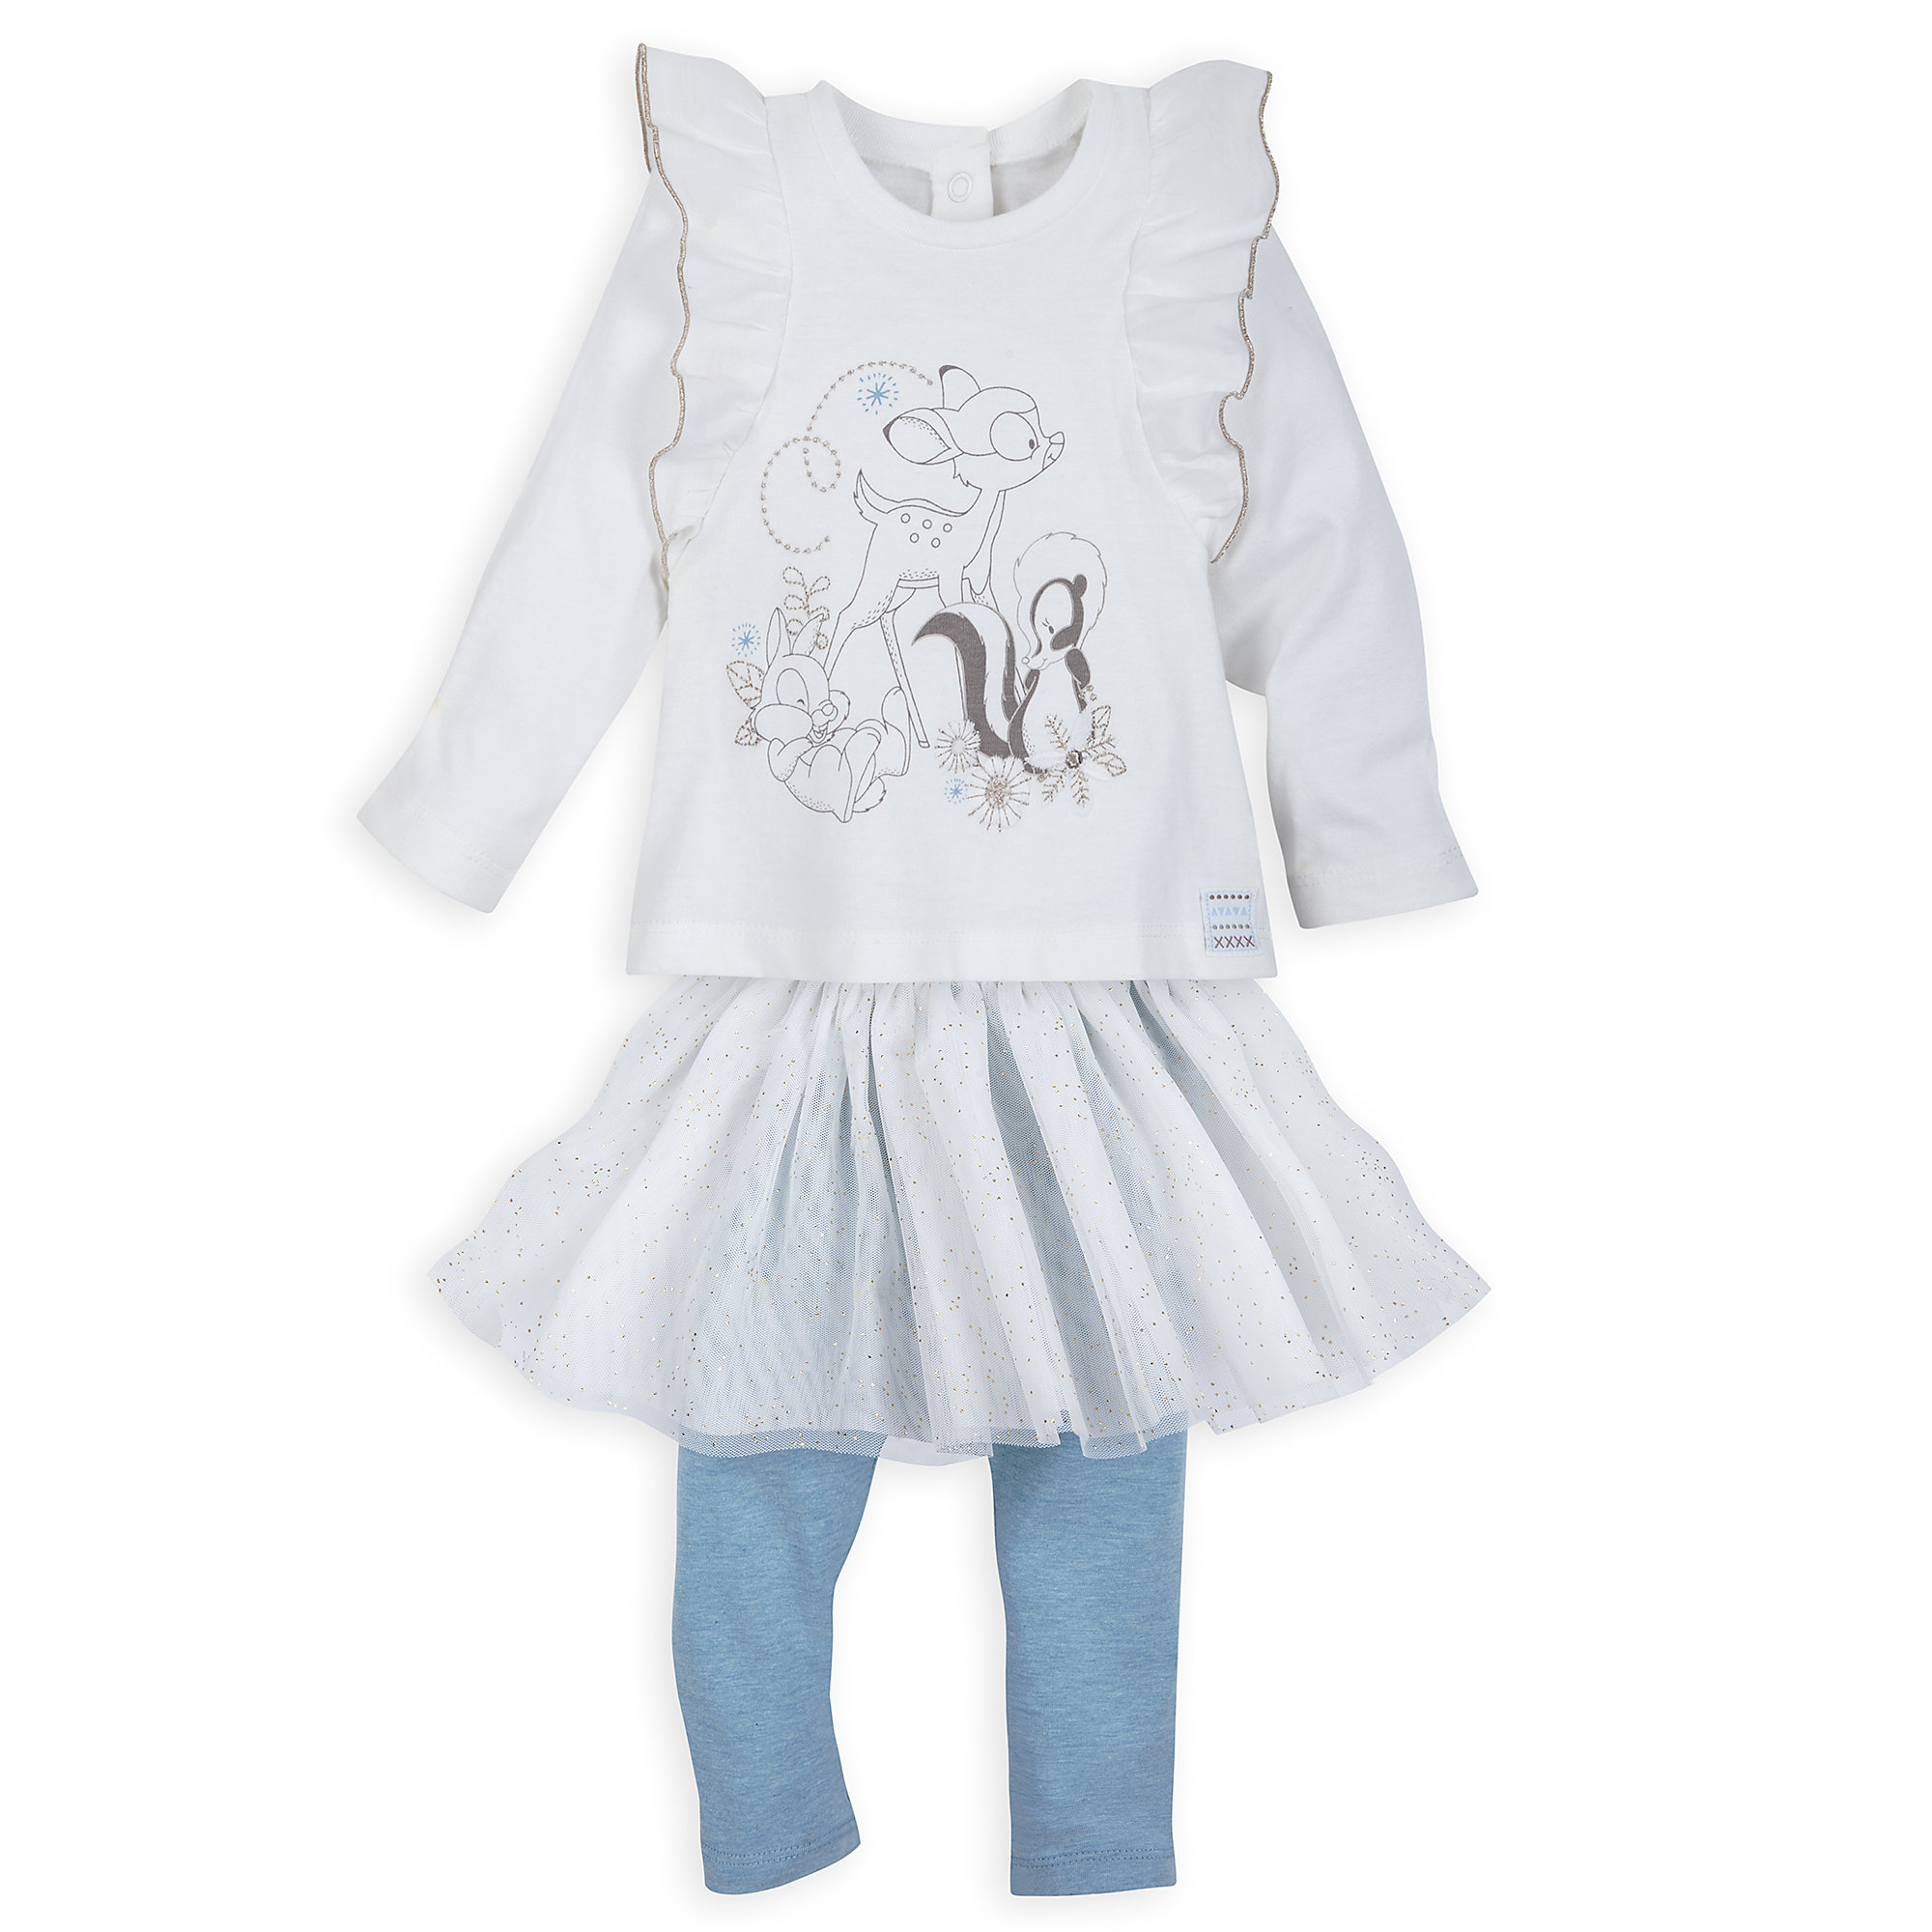 Bambi and Friends T-Shirt and Leggings Set for Baby